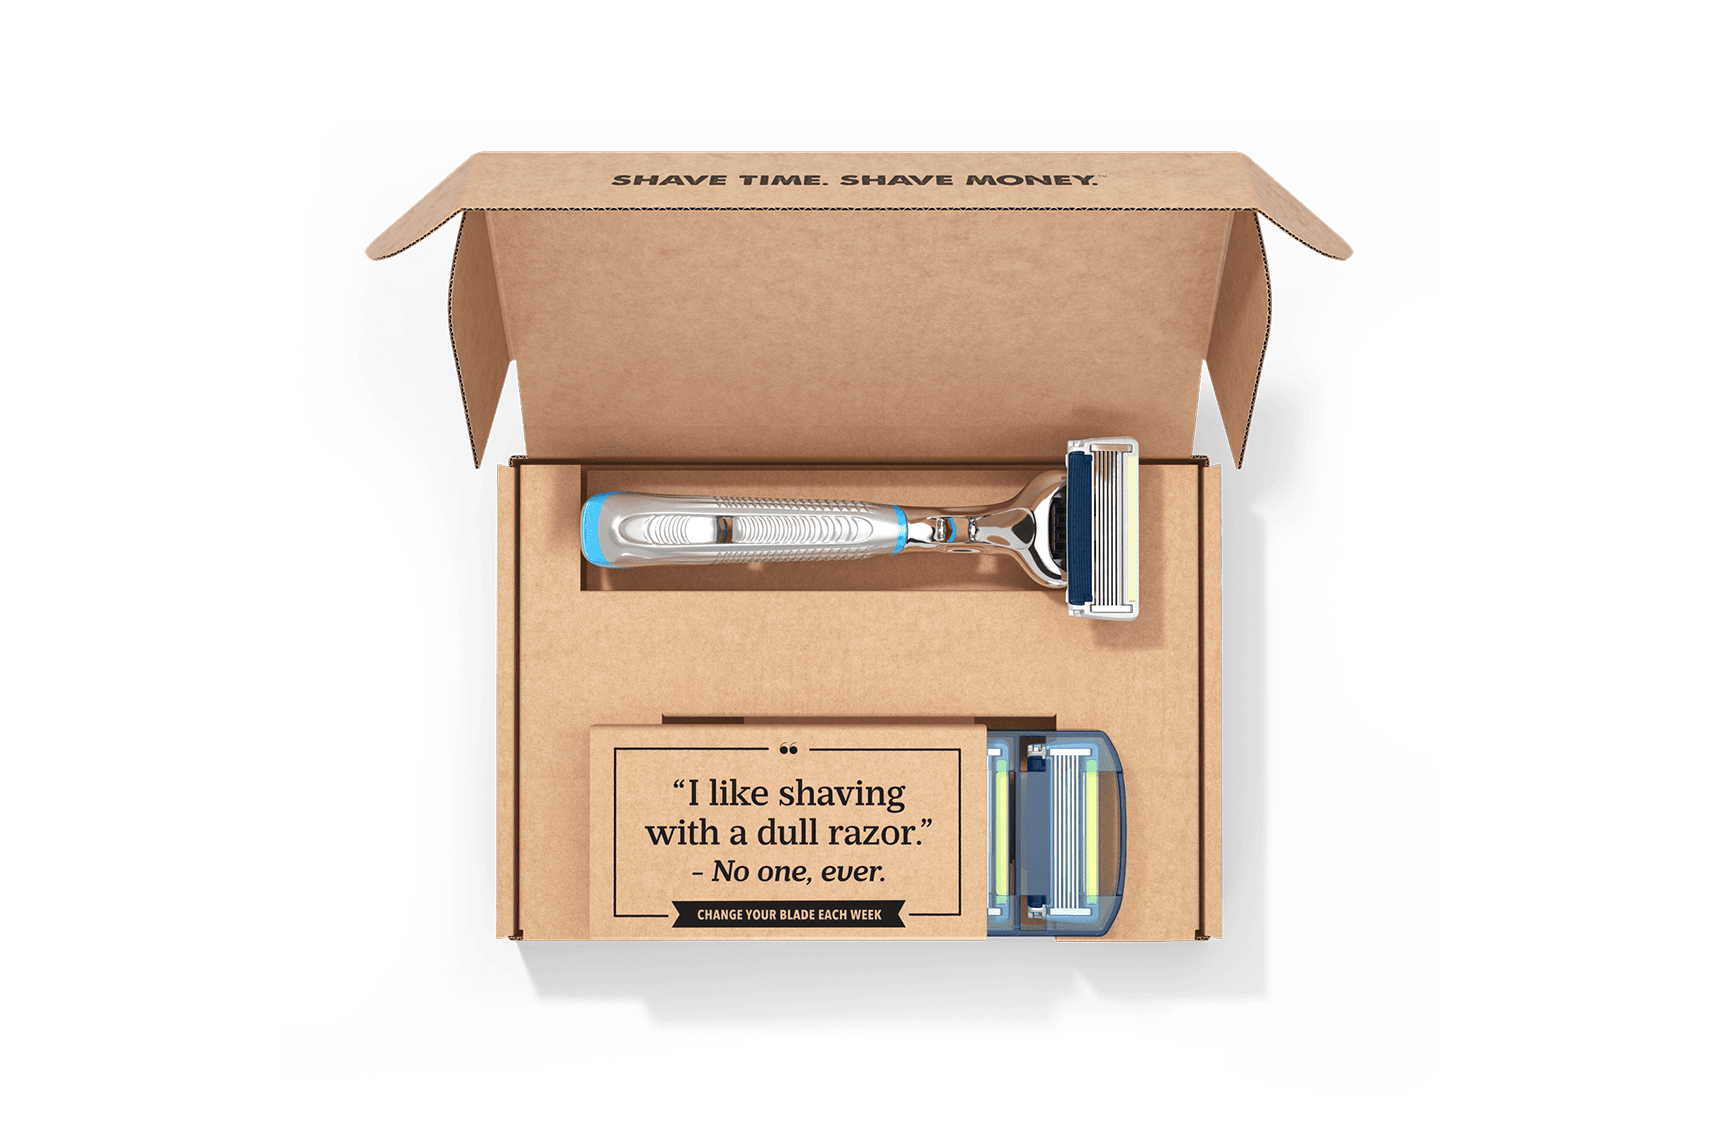 How Dollar Shave Club keeps a pulse on brand health, make multi-million dollar advertising decisions and uncover opportunities for global expansion.